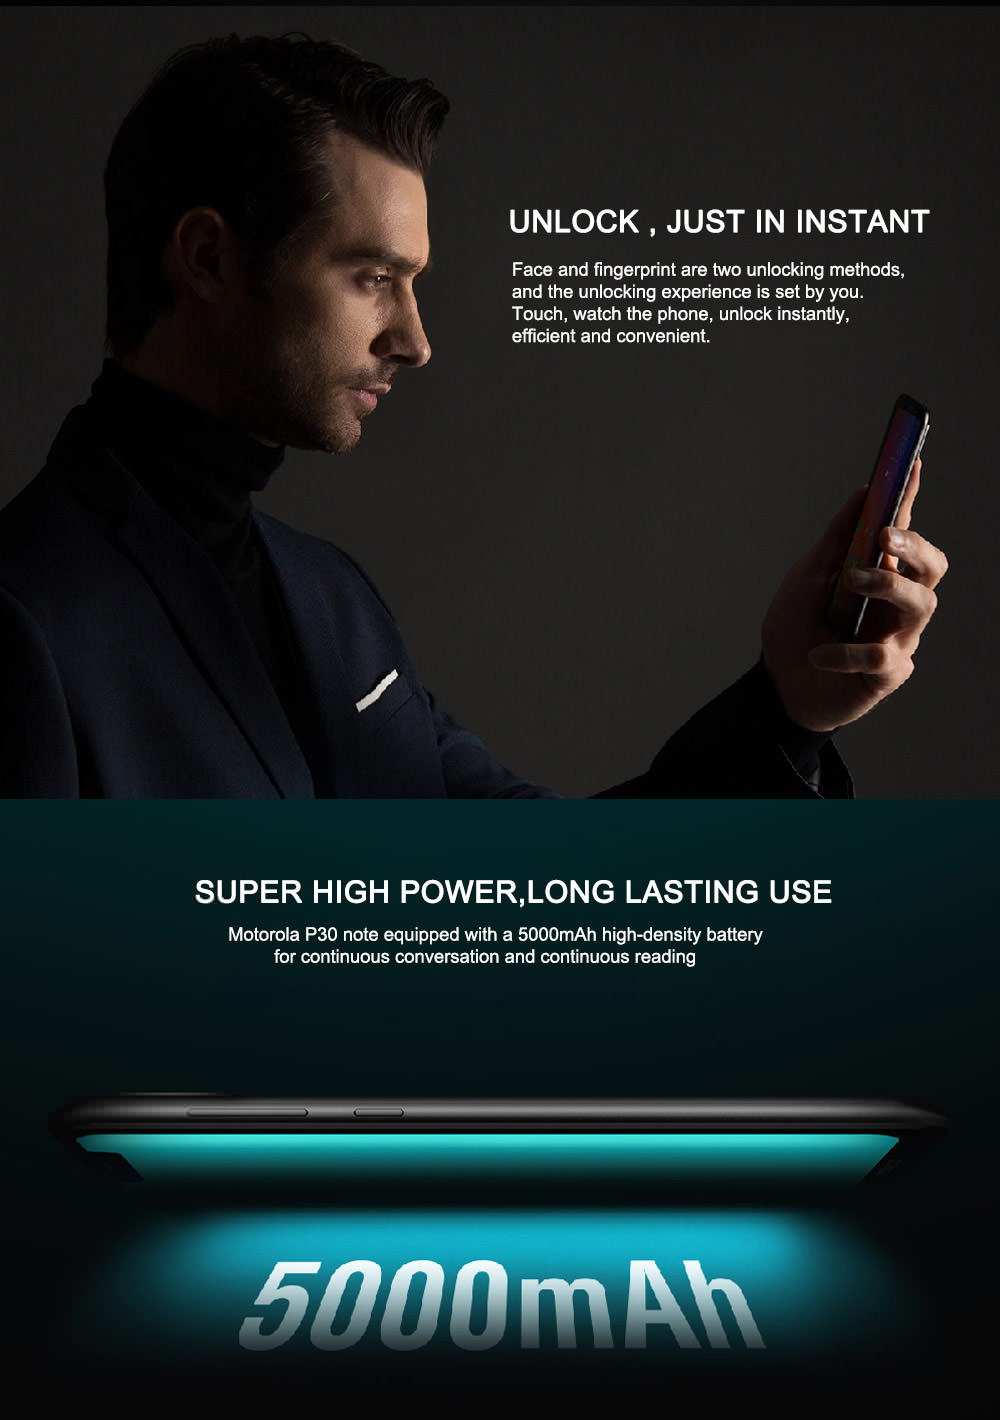 new lenovo moto p30 note smartphone international